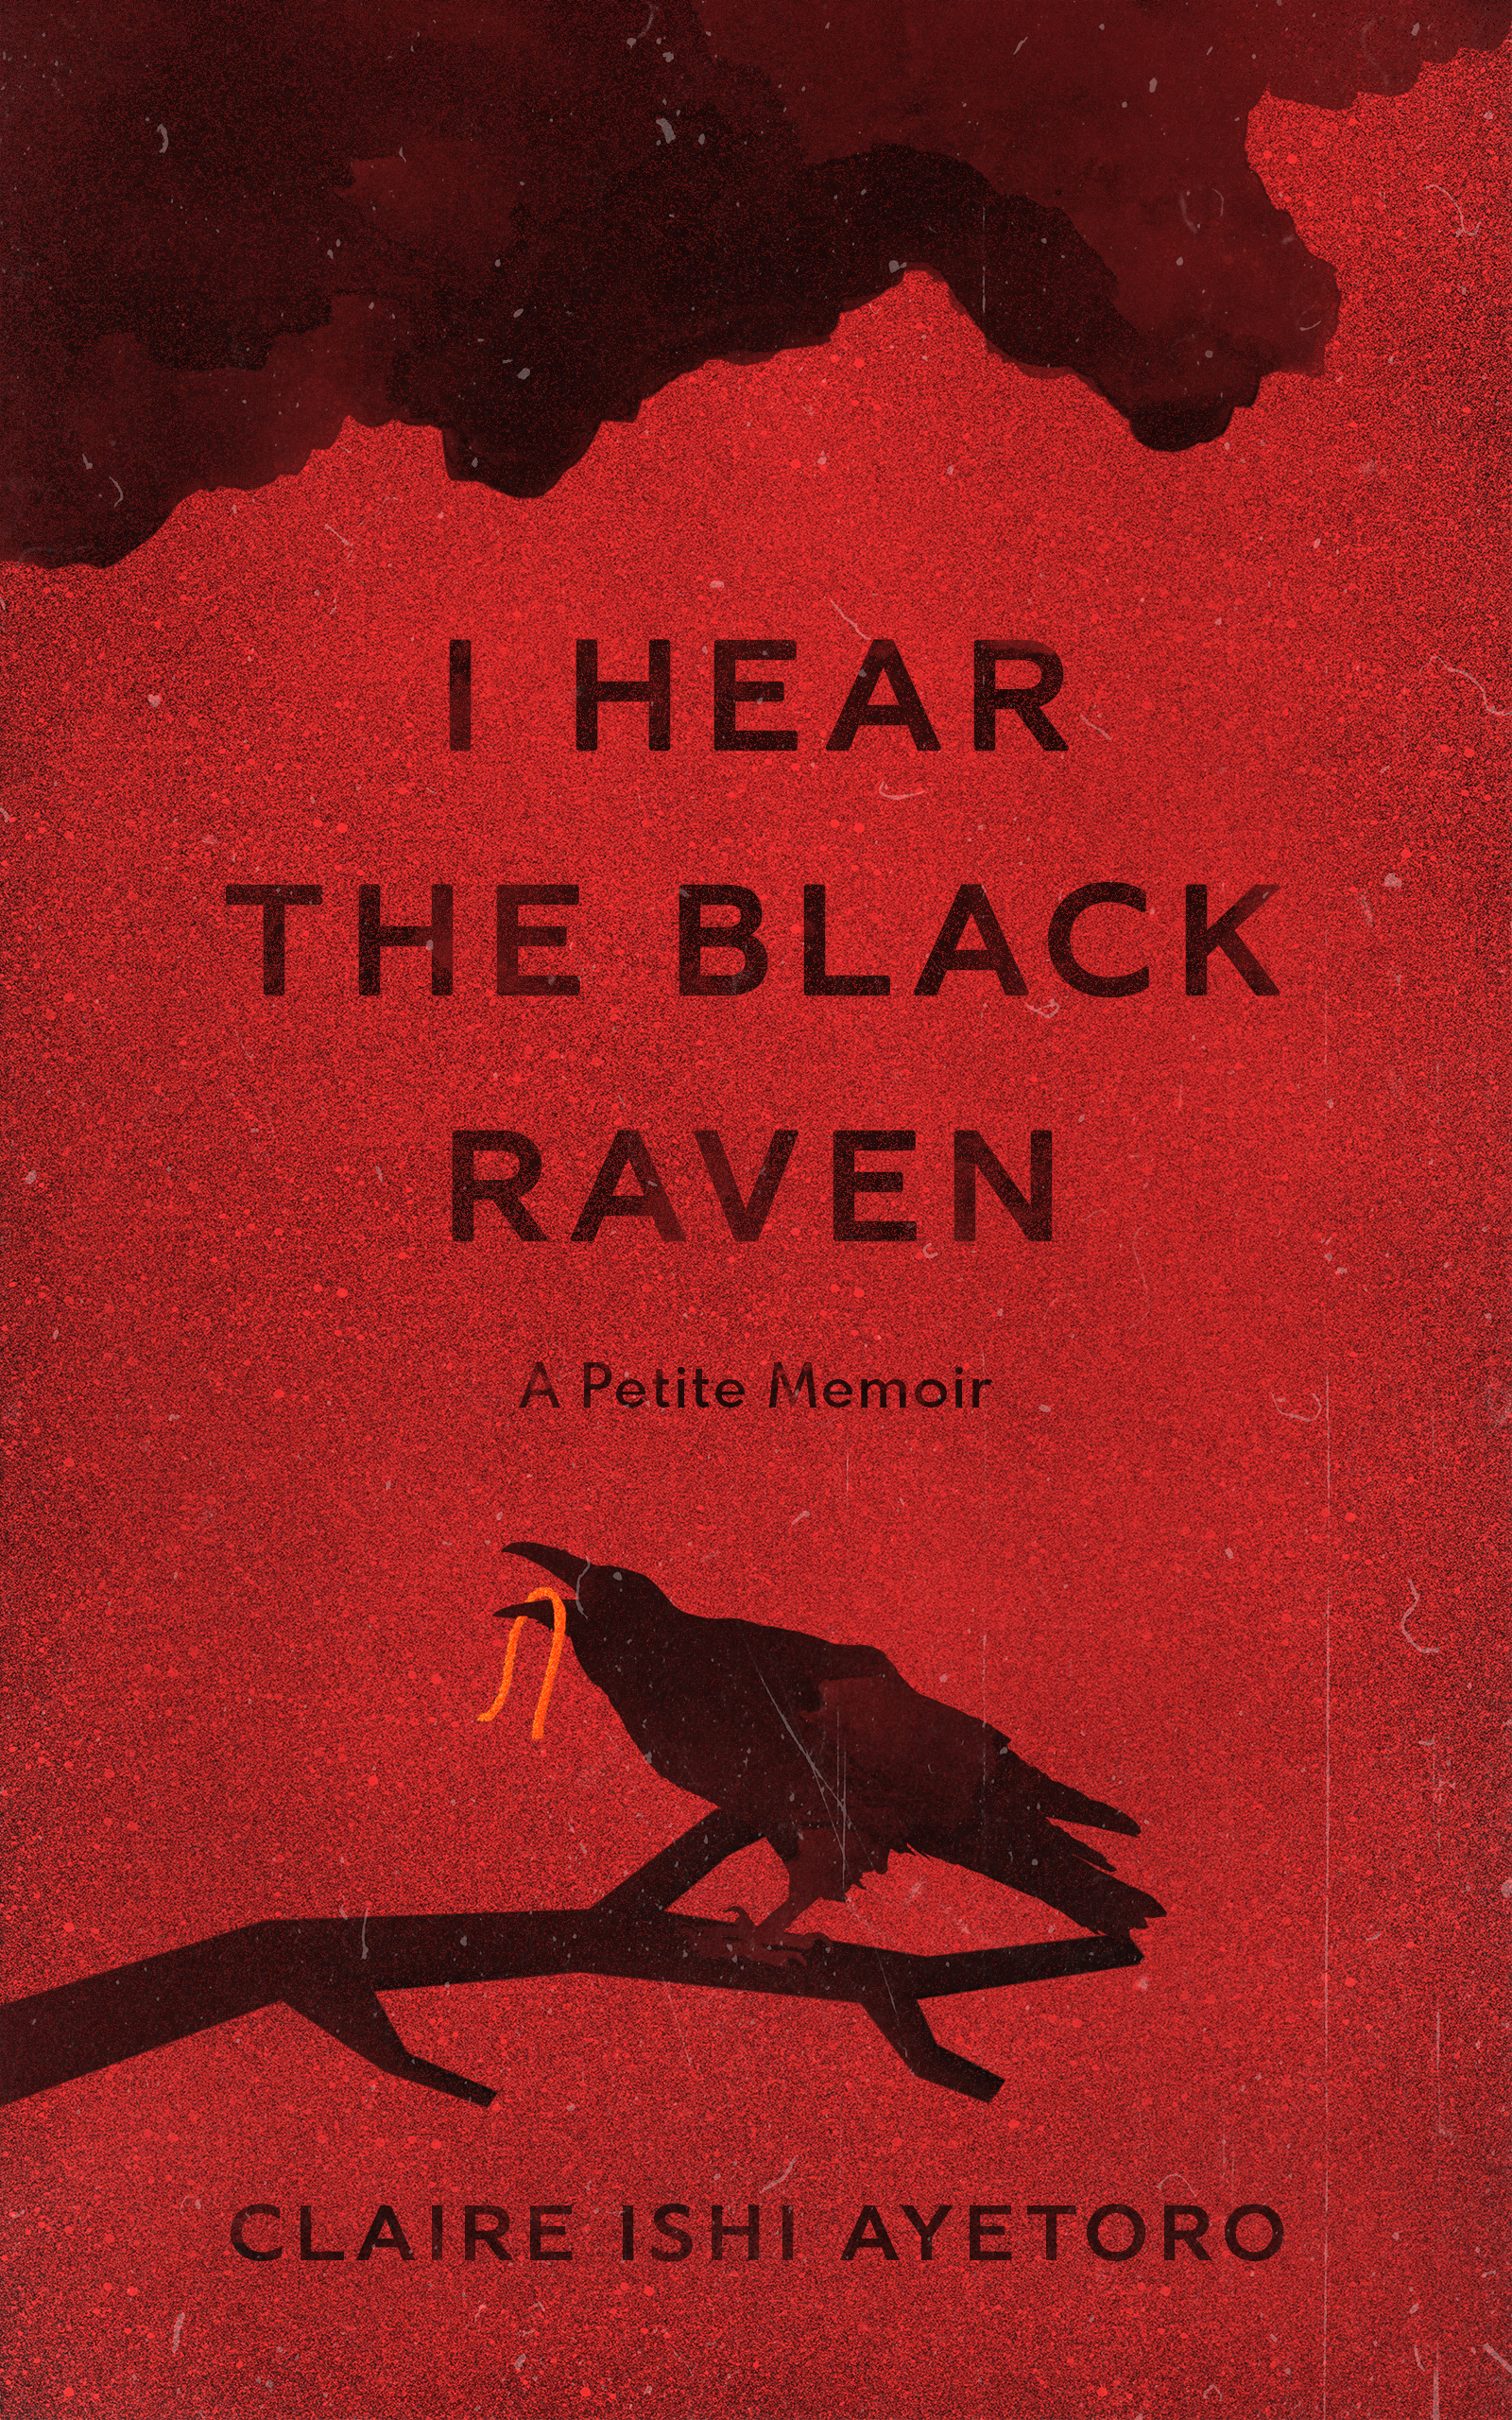 Listen to the Raven.